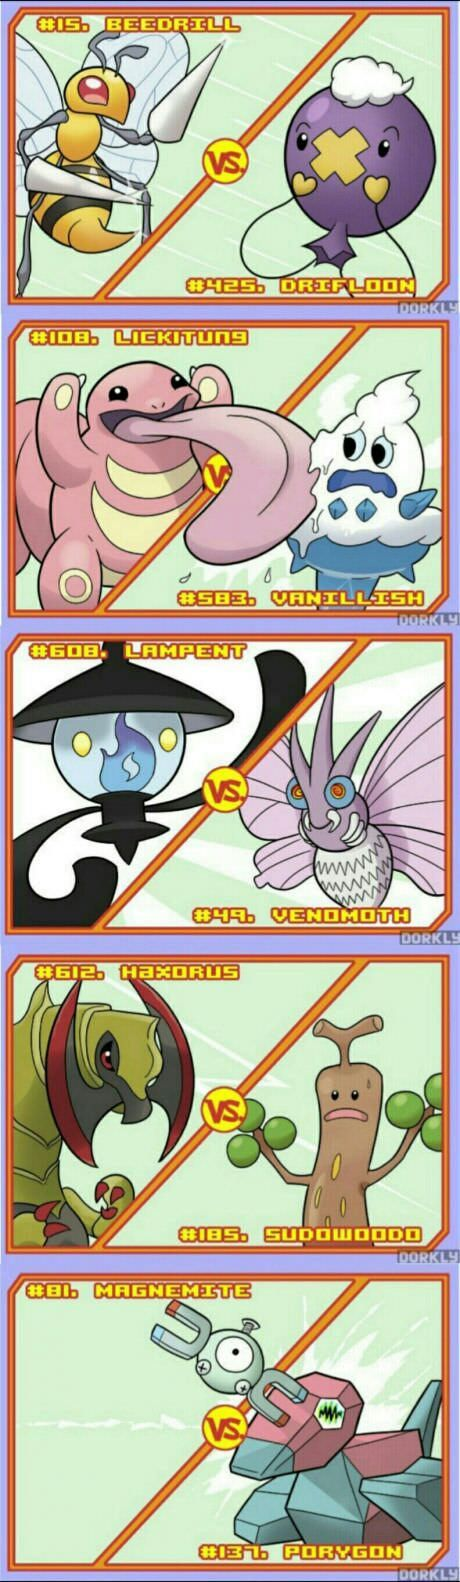 Battles that would end very fast.